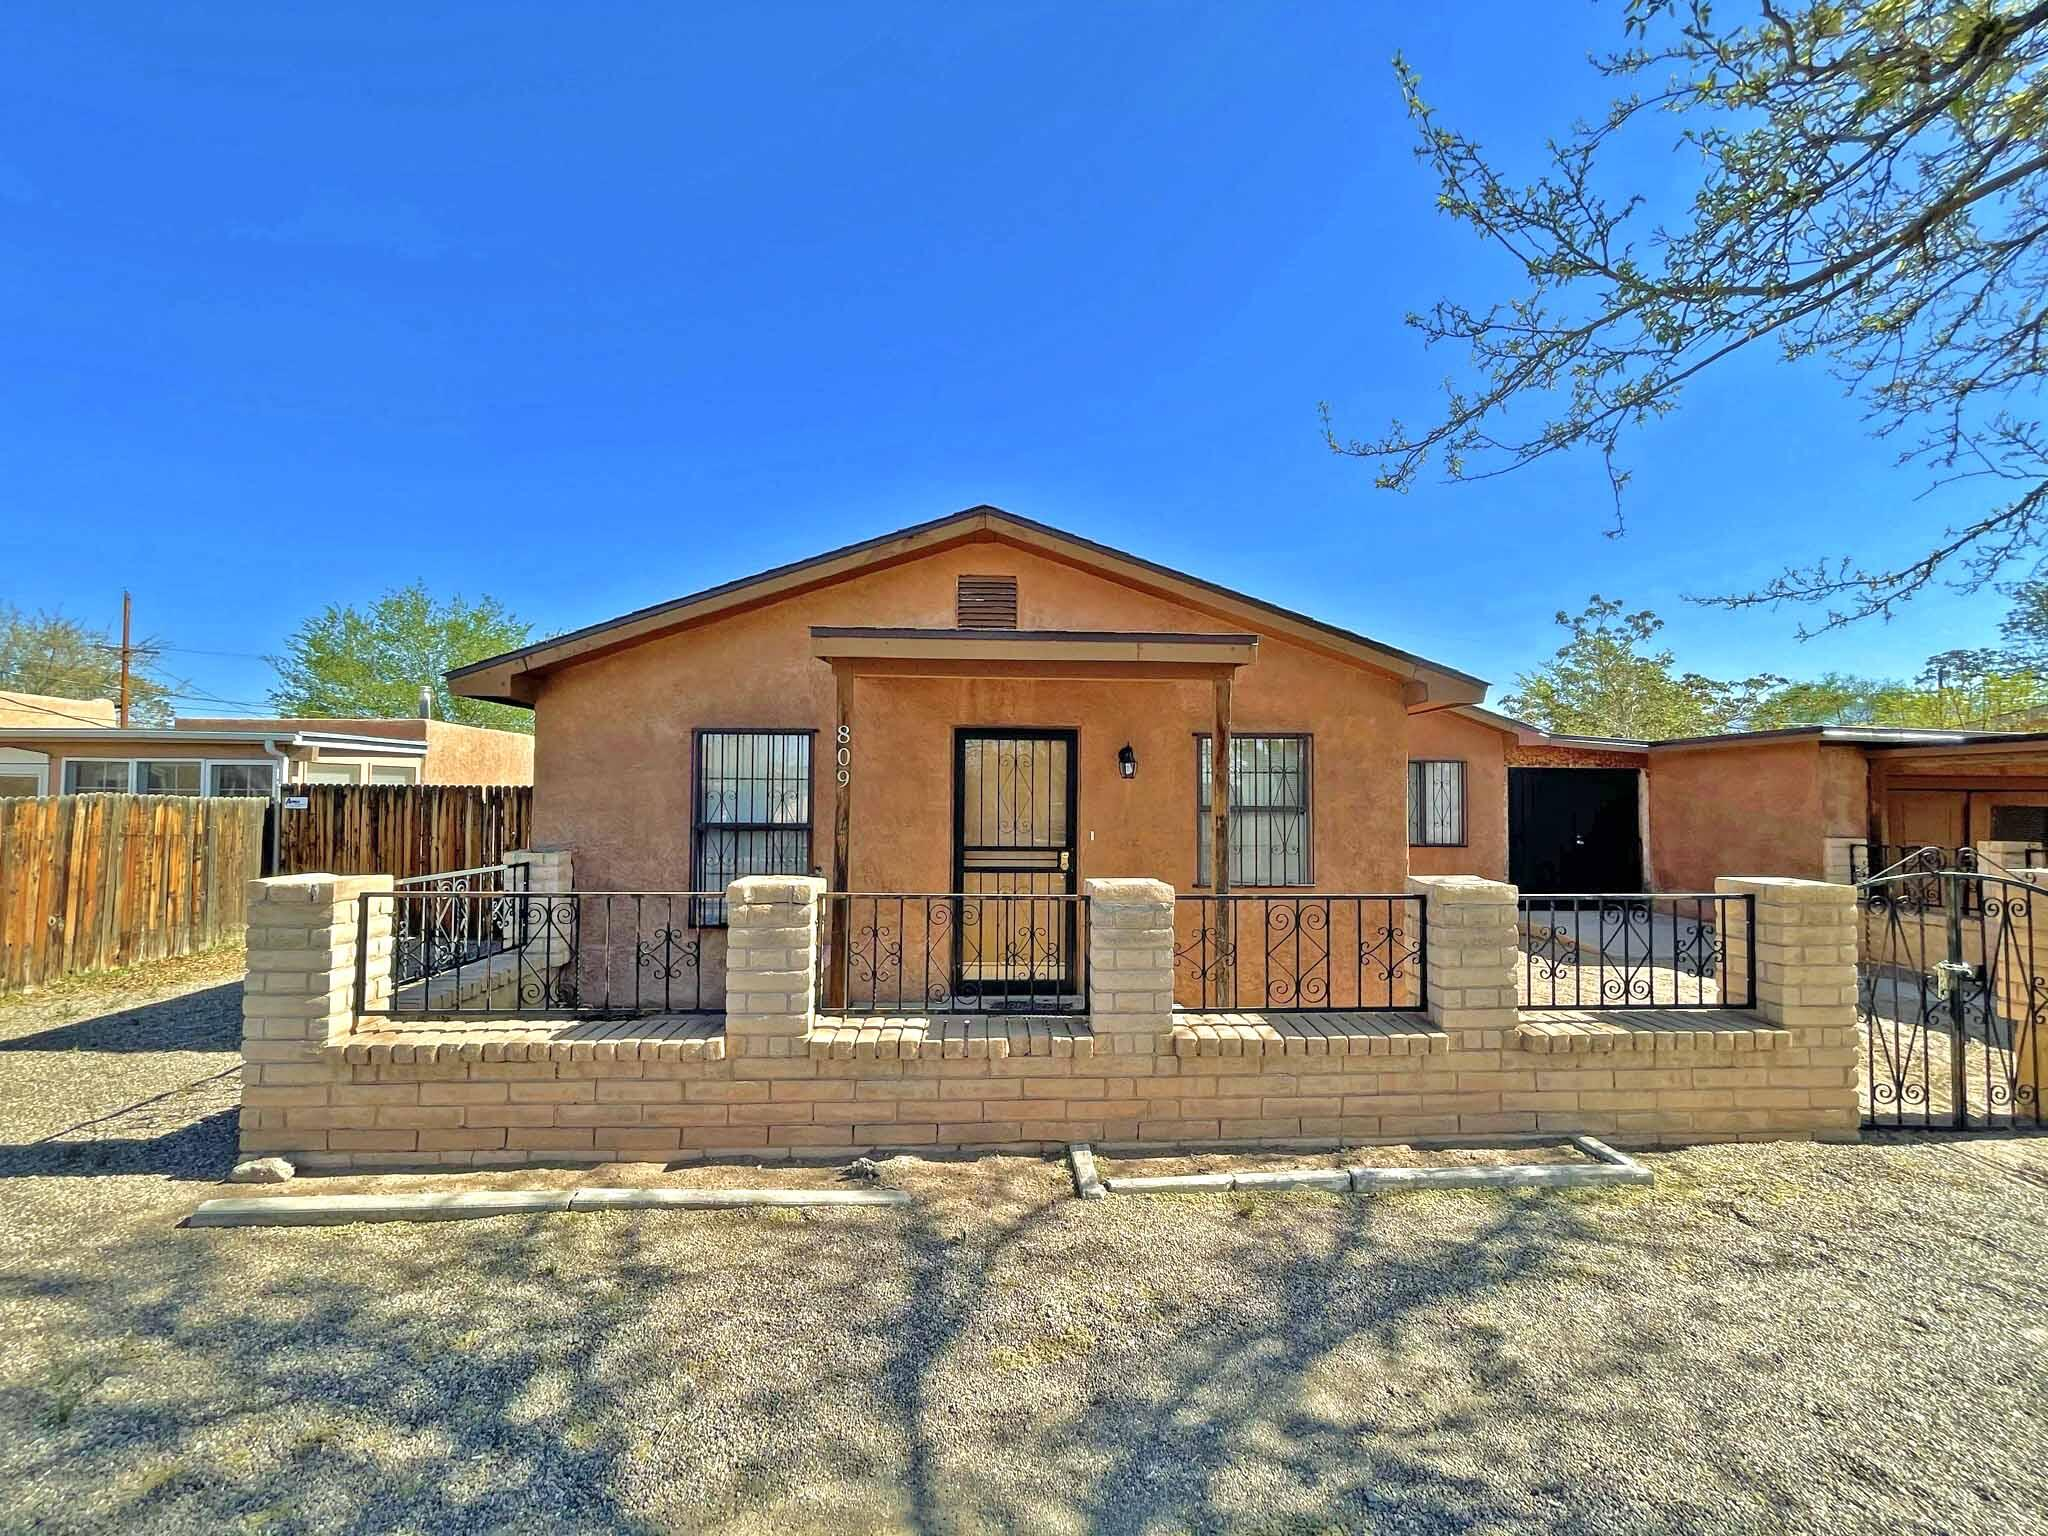 Check out this North Valley home!  New HVAC with refrigerated air and new roof installed about 5 years ago!  Large Master bedroom with large full bath.  Large kitchen.  Backyard access for RV.  Circular drive and courtyard in front.  All fixtures work.  Being sold as is.  This one won't last so come check it out!